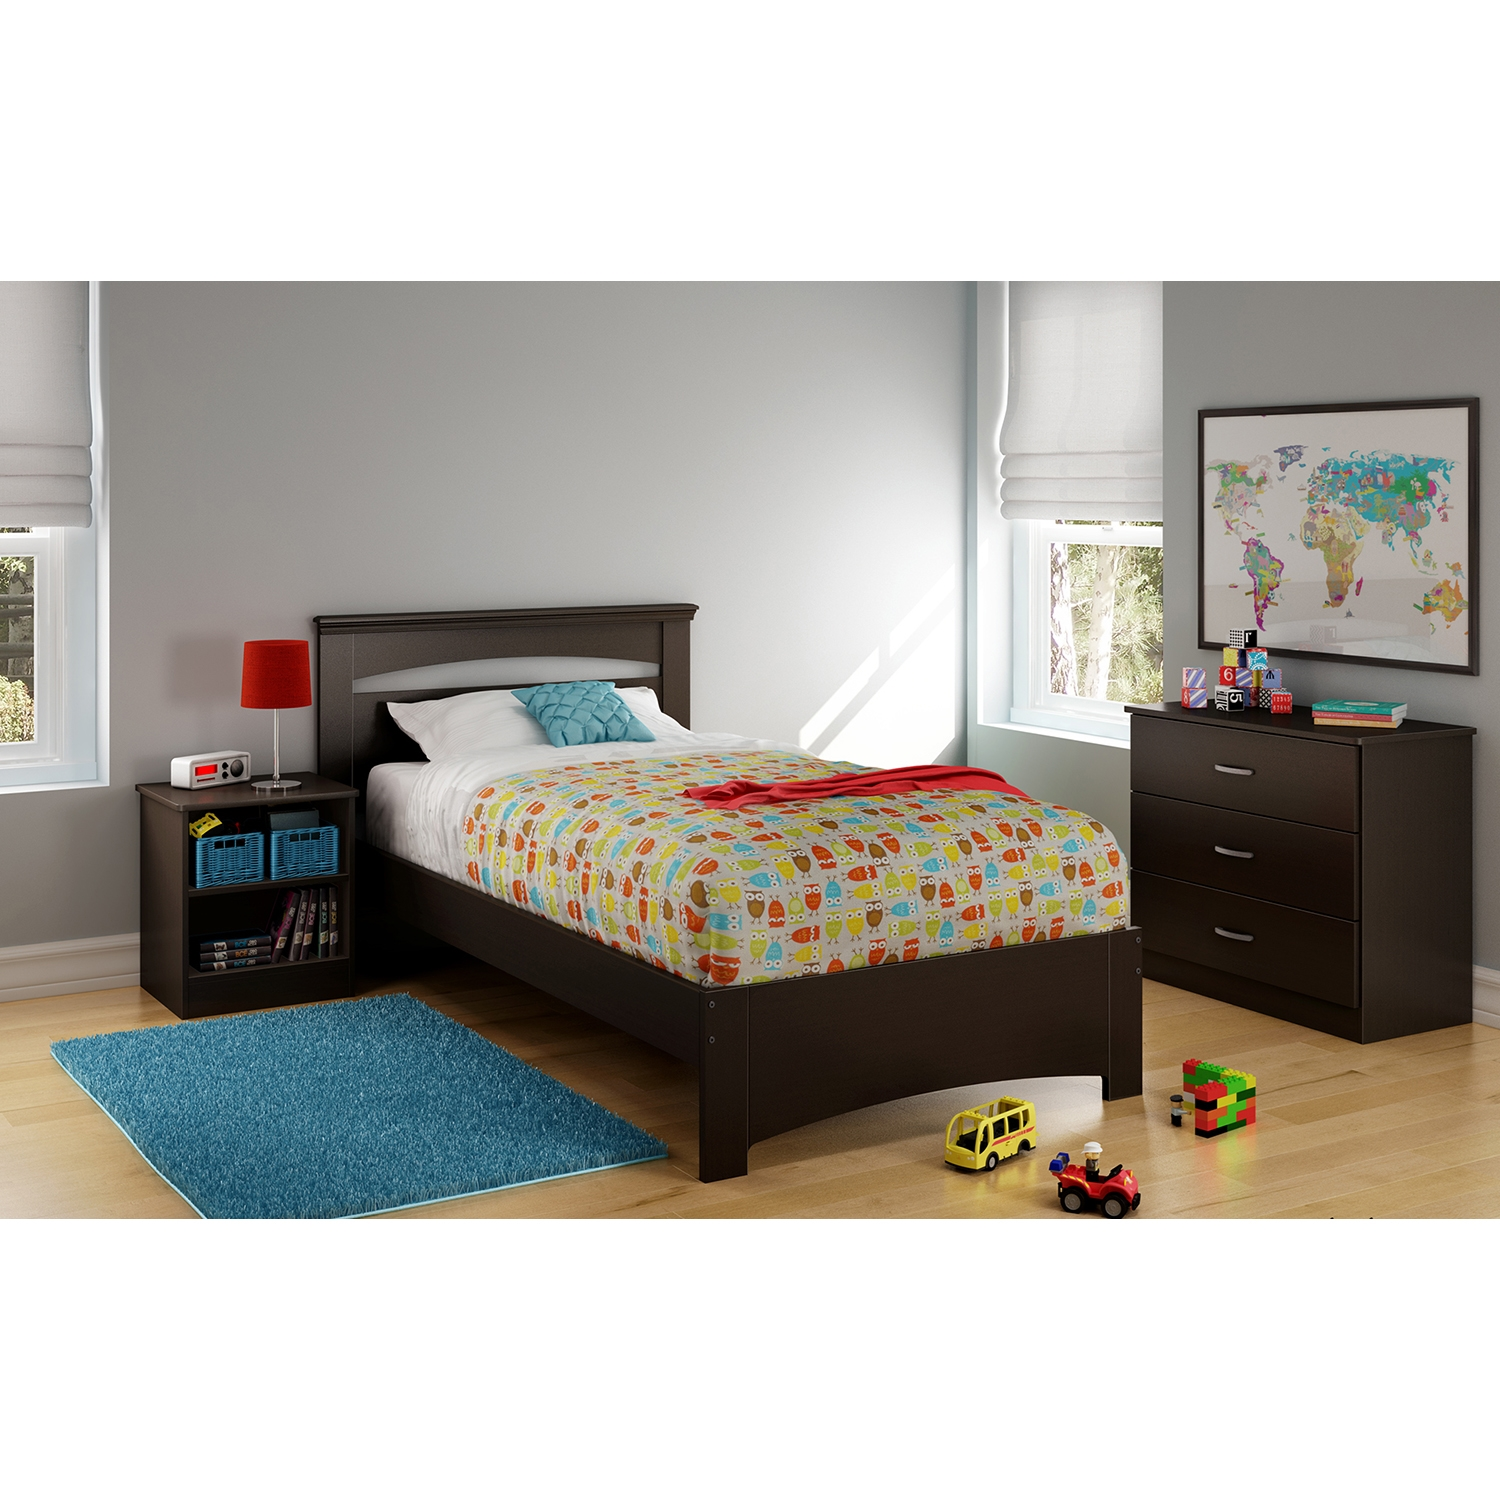 Libra Twin Bed - Chocolate - SS-3859189